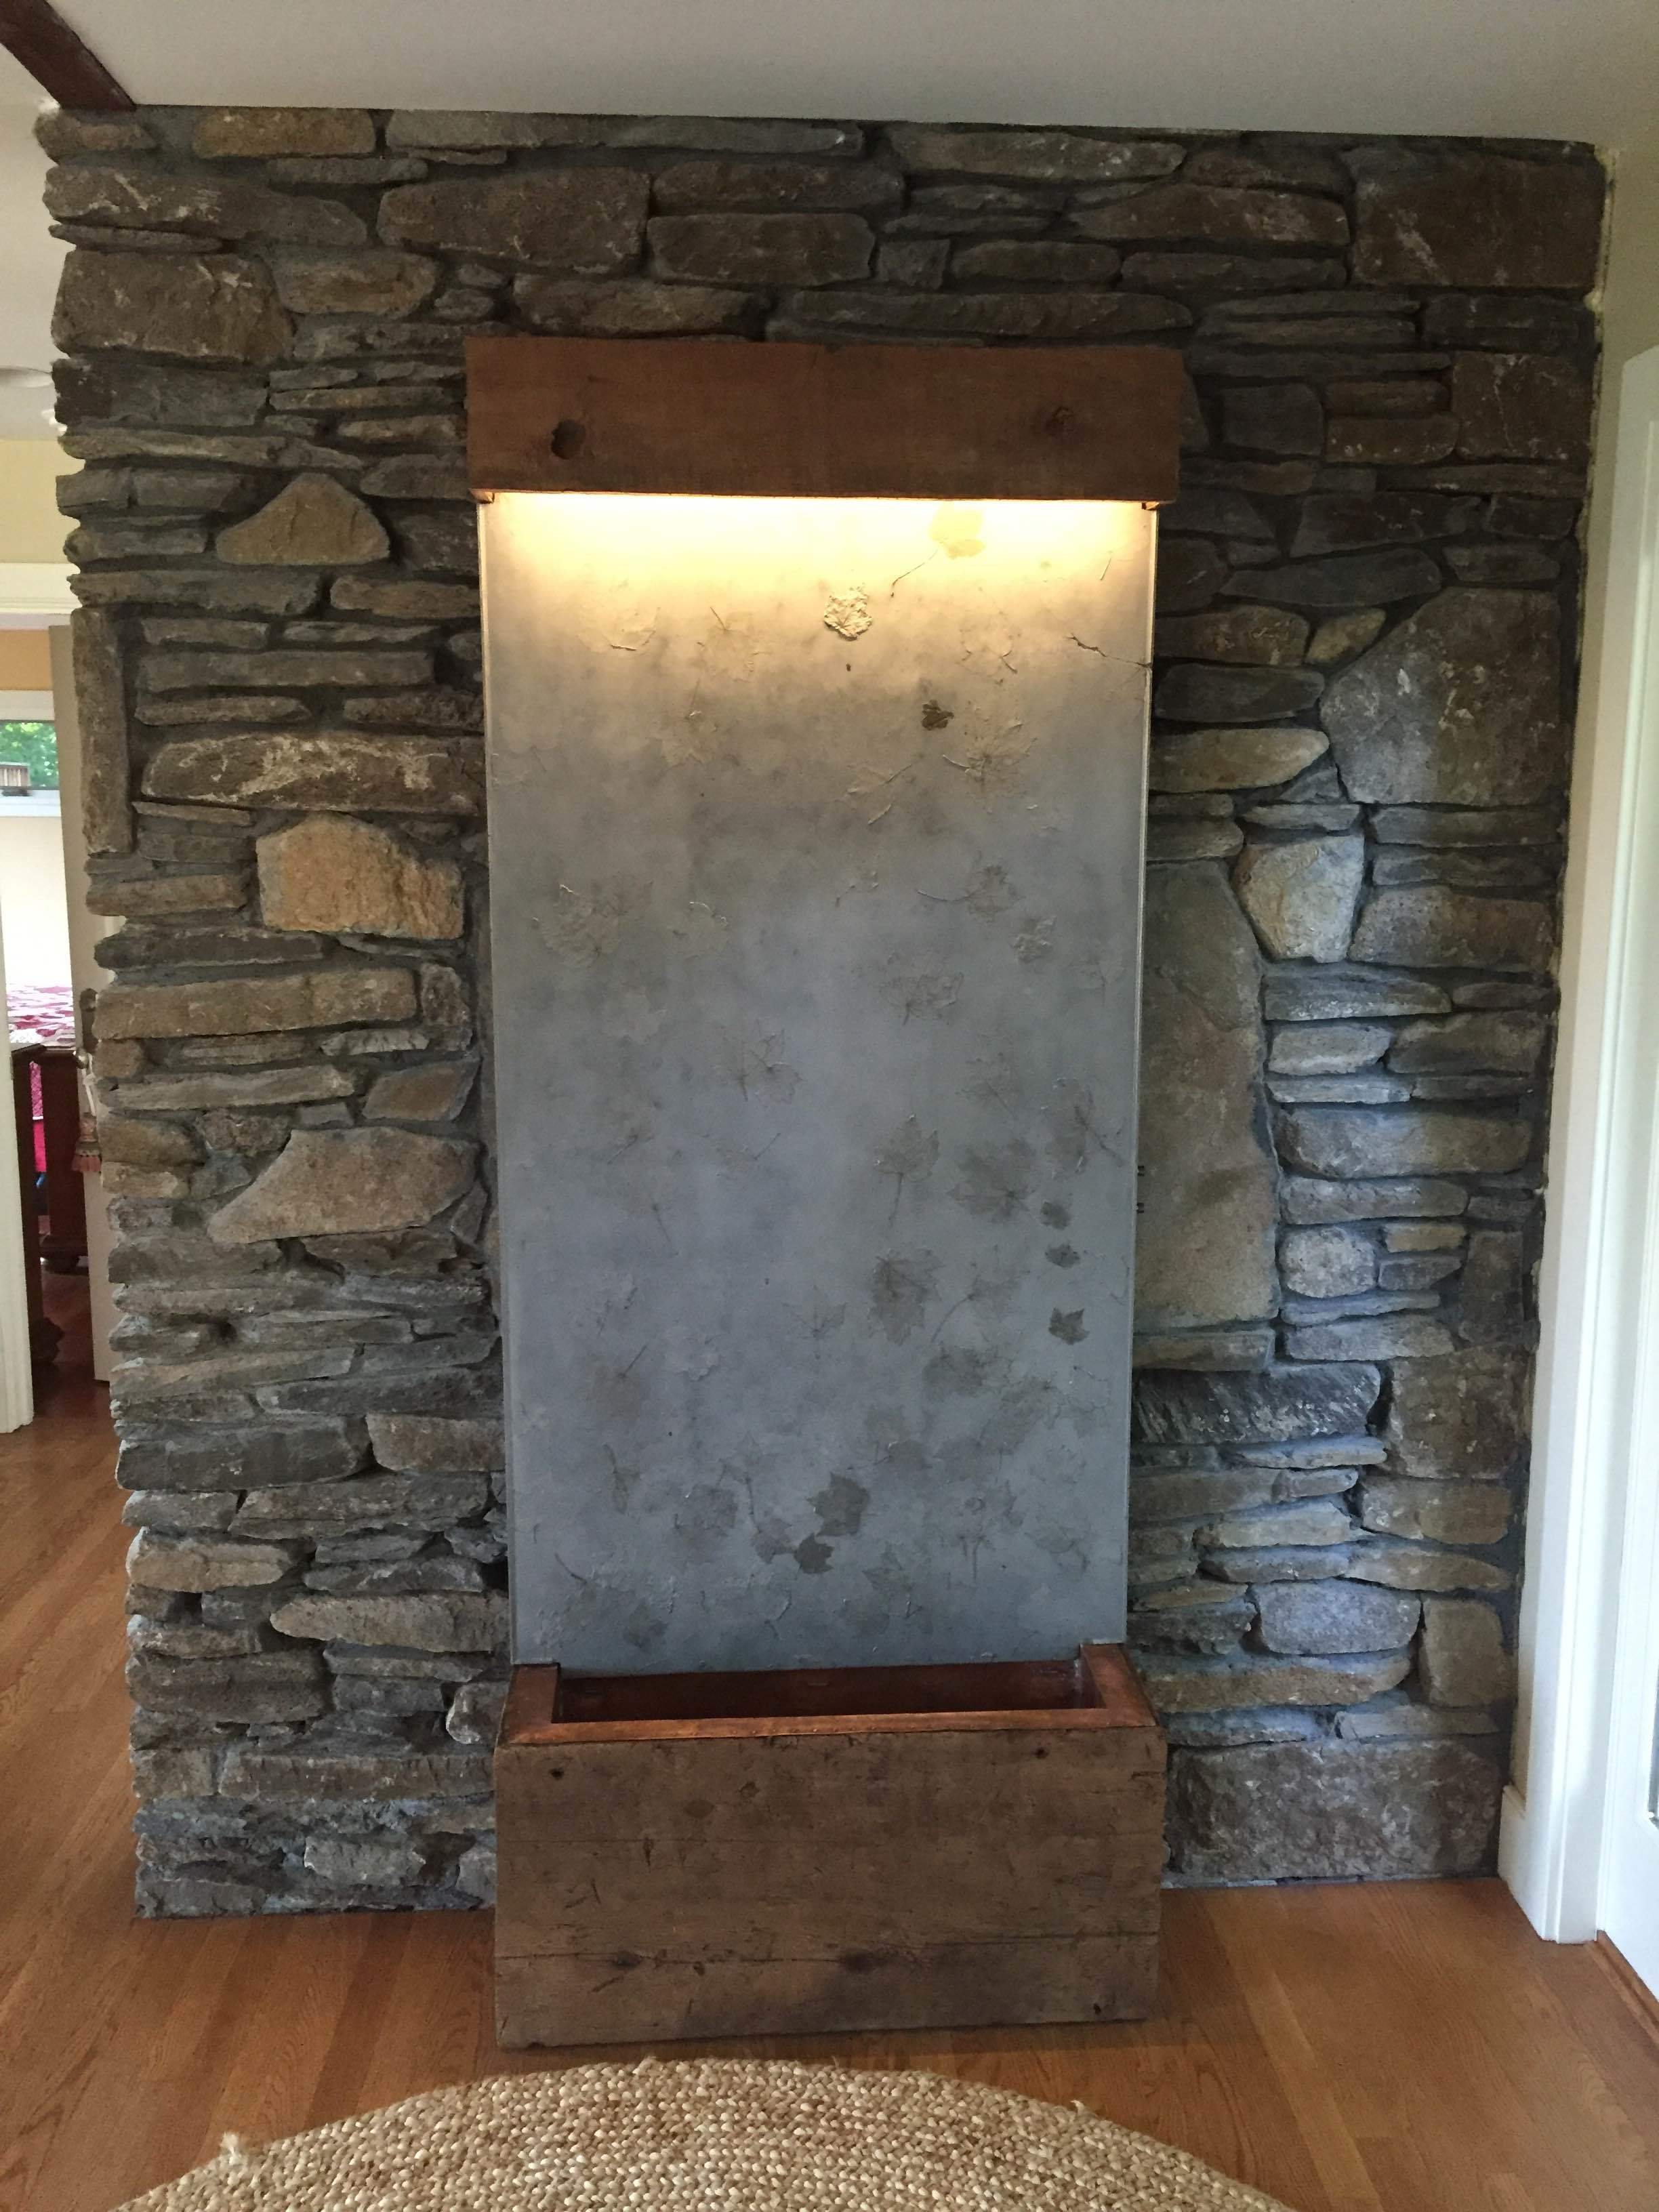 Concrete water wall fountain, with hammered copper basin and reclaimed wood base.